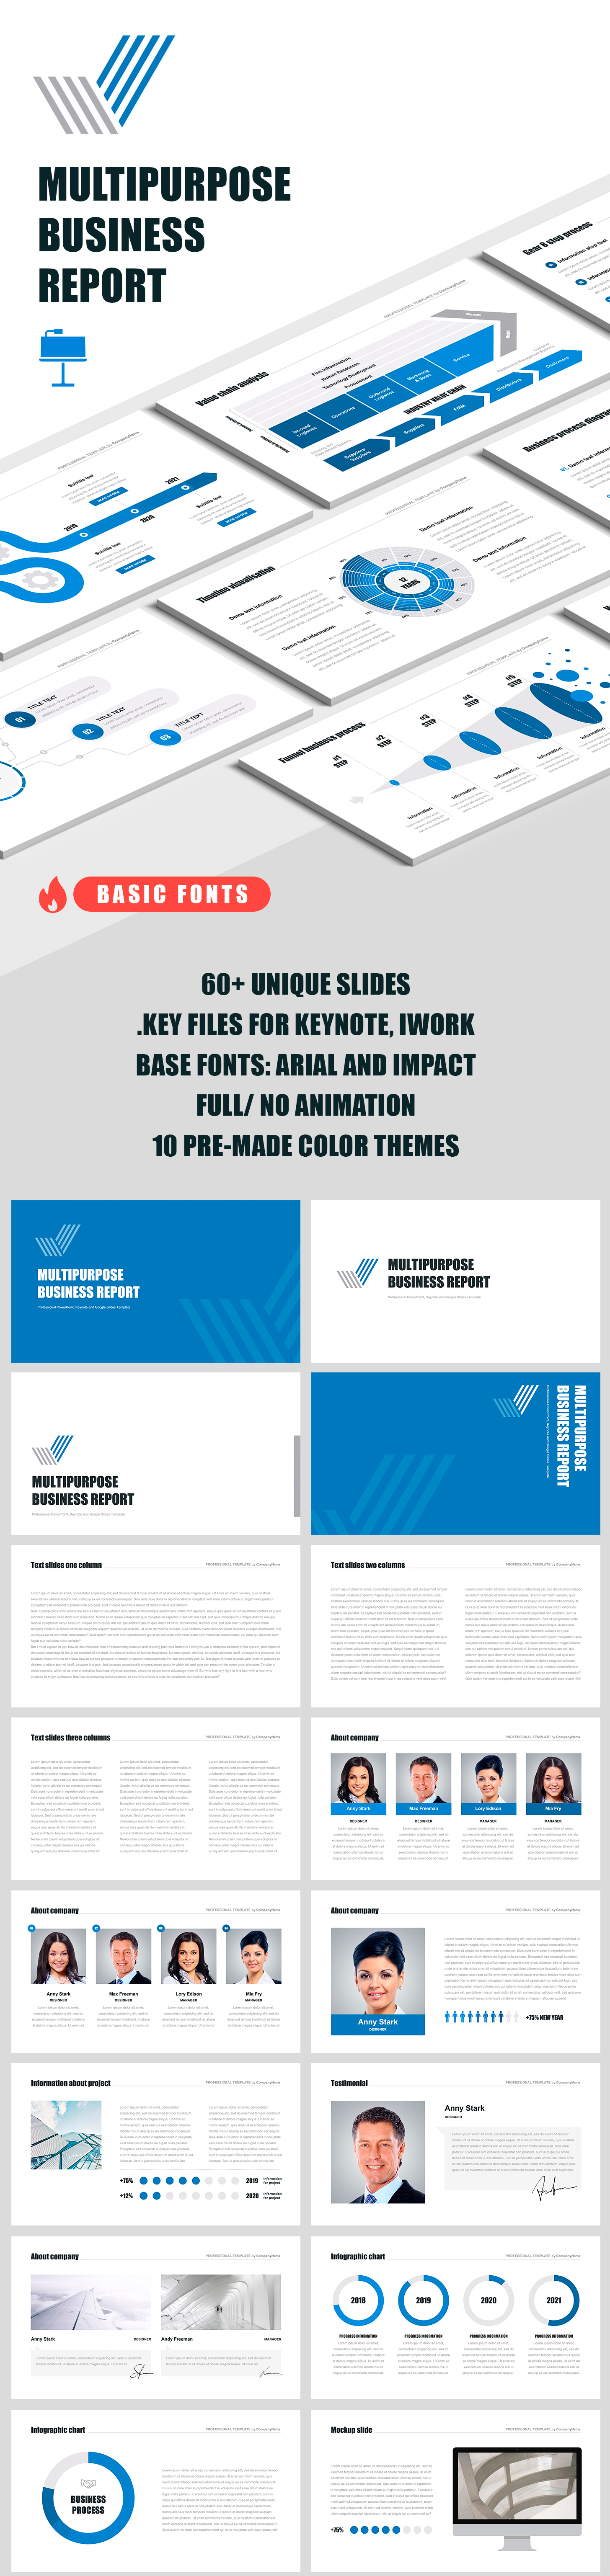 keynote-business-reports-multipurpose